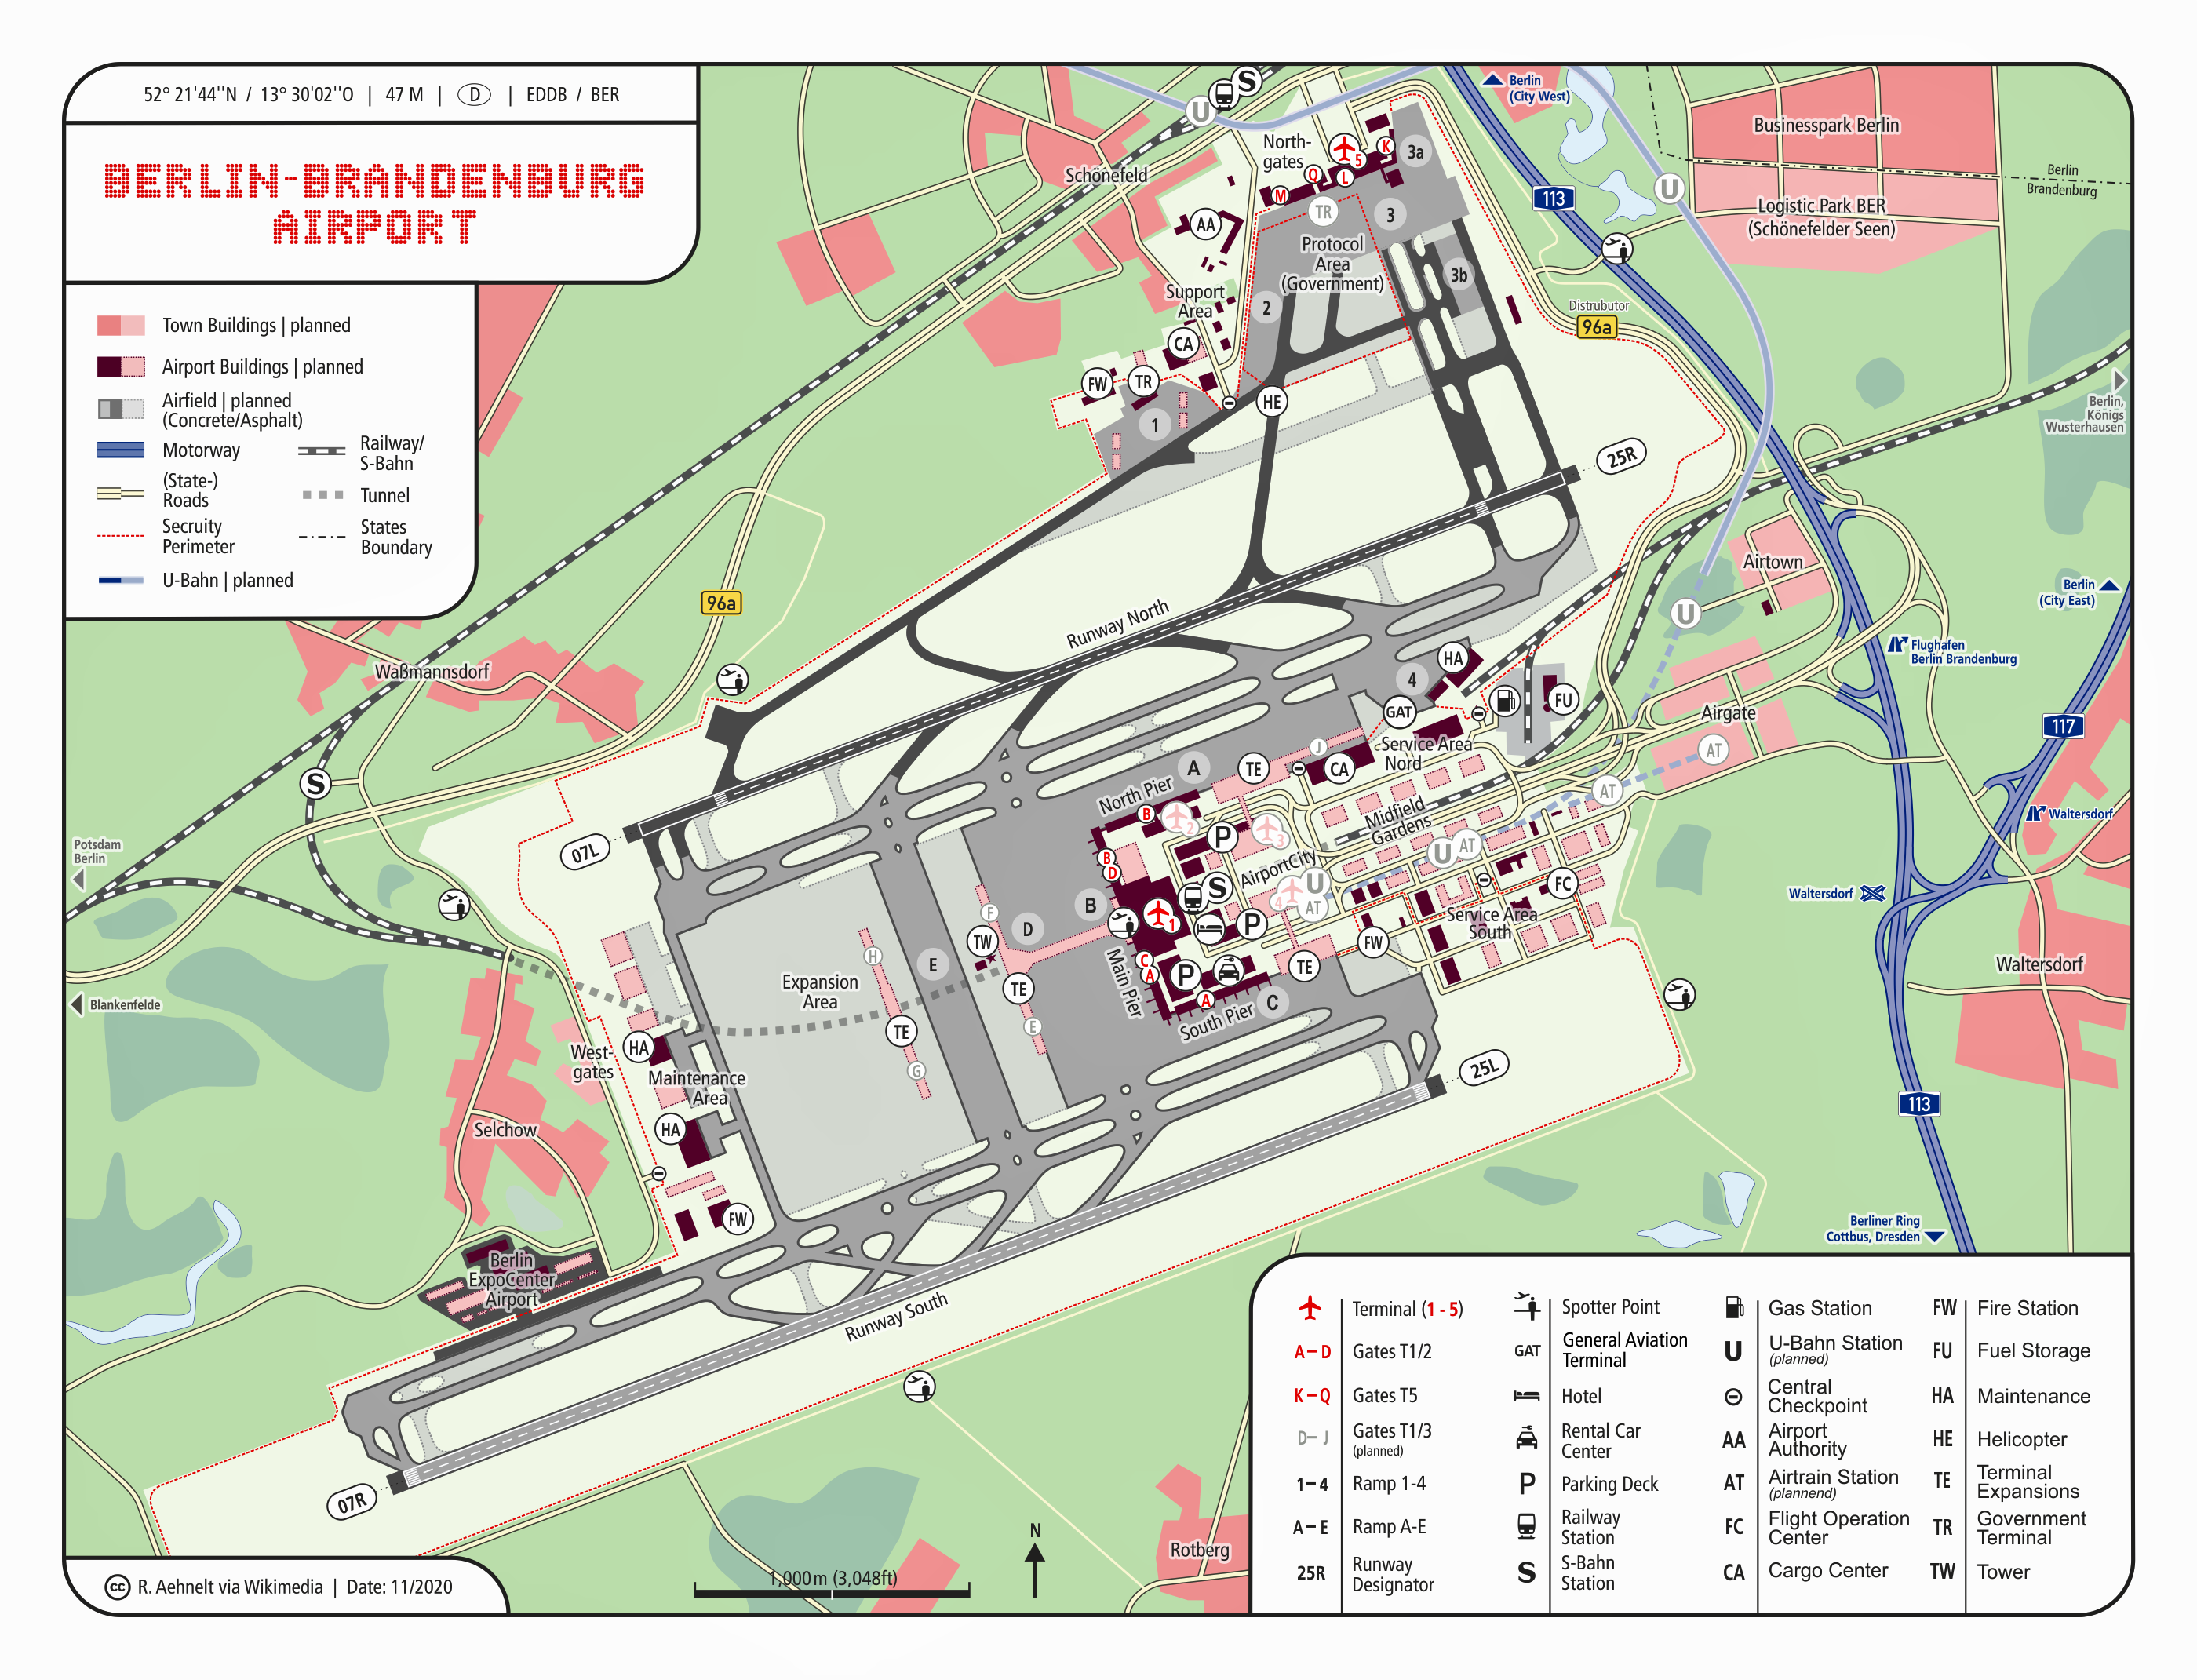 Berlin Schoenefeld Airport Map File:Map Berlin Brandenburg Airport.png   Wikimedia Commons